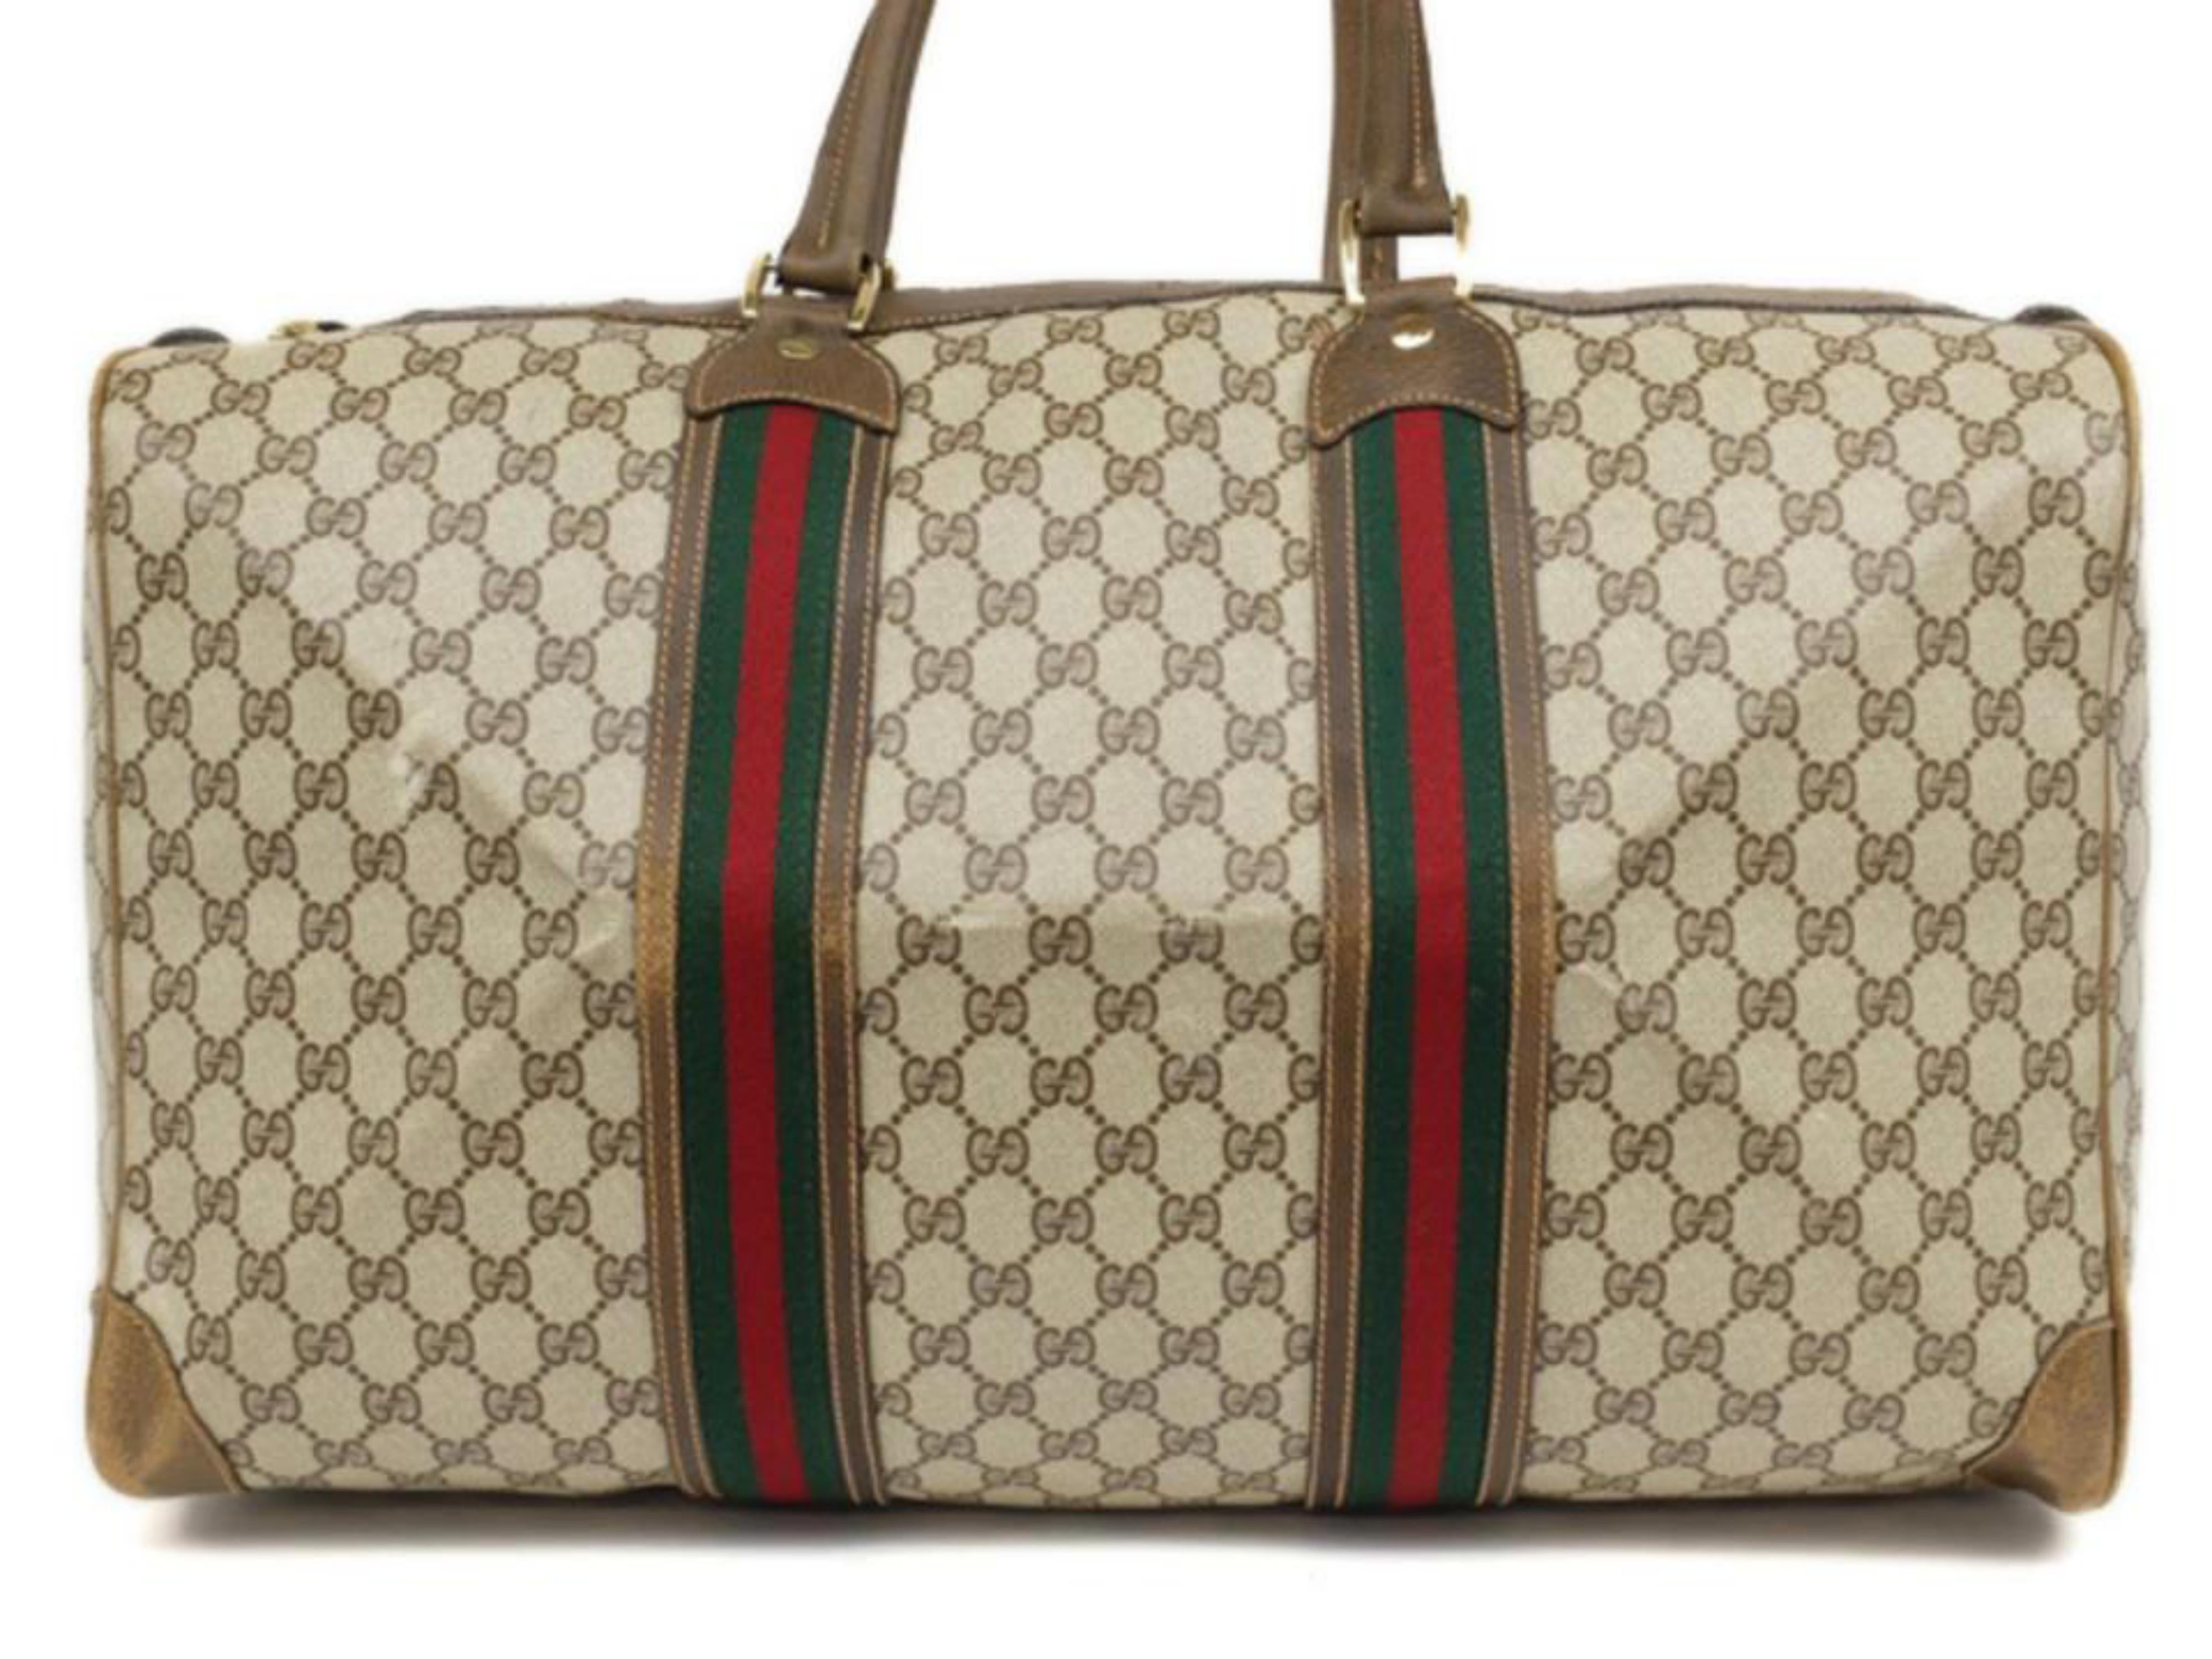 d3d6851a8e2 Gucci Boston Sherry Monogram Web Duffle 230431 Brown Weekend Travel Bag For  Sale at 1stdibs